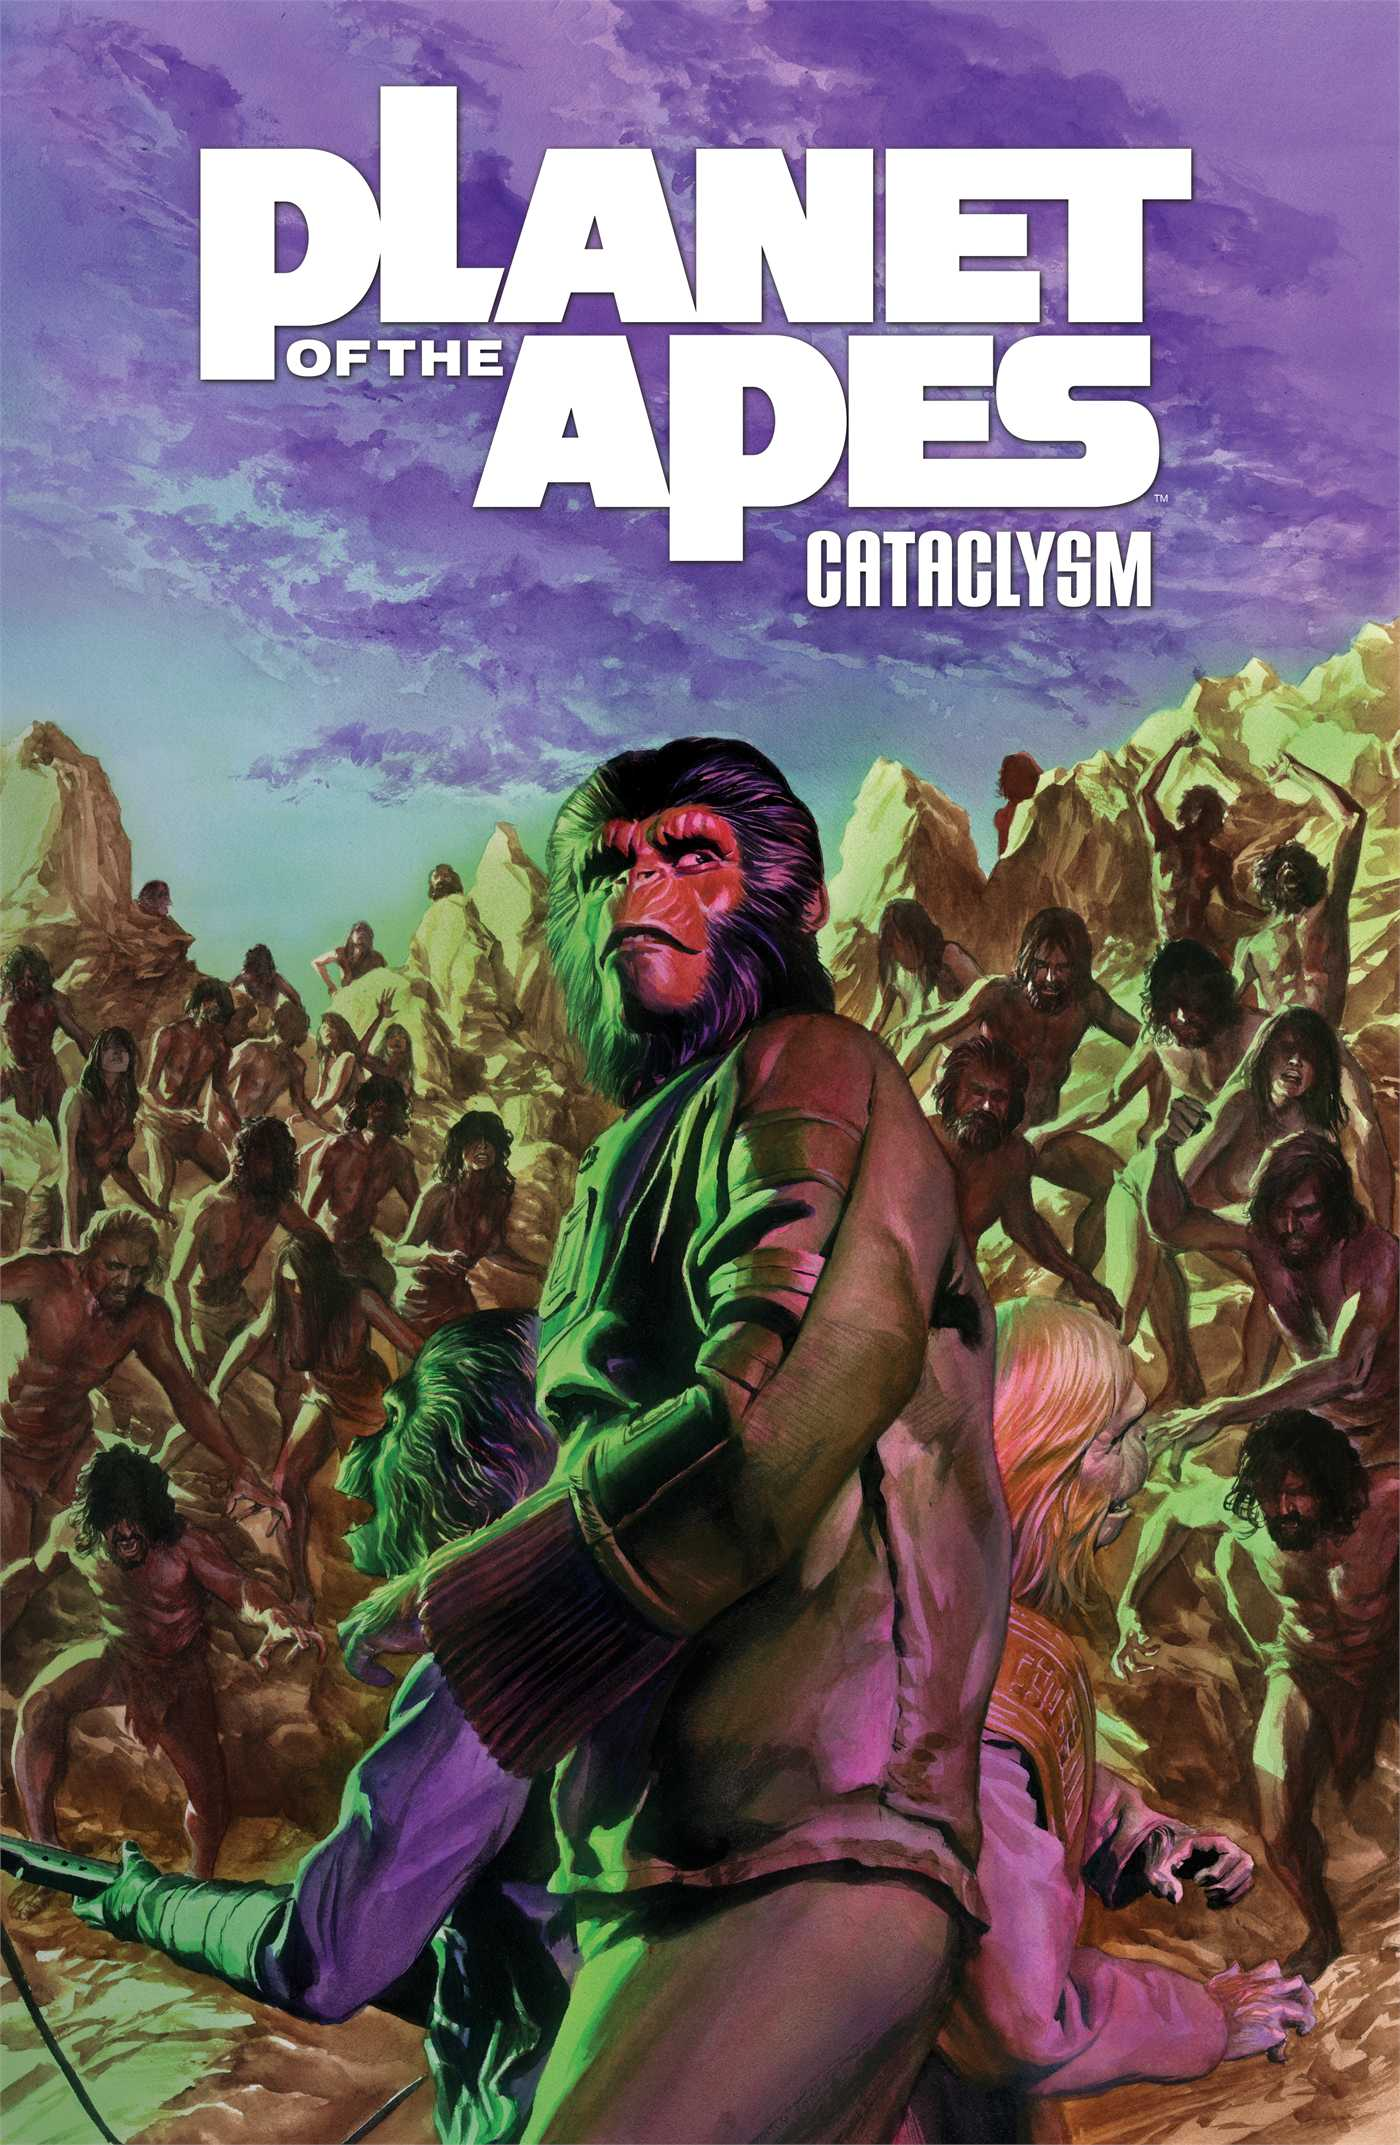 Planet-of-the-apes-cataclysm-vol-3-9781608863648_hr